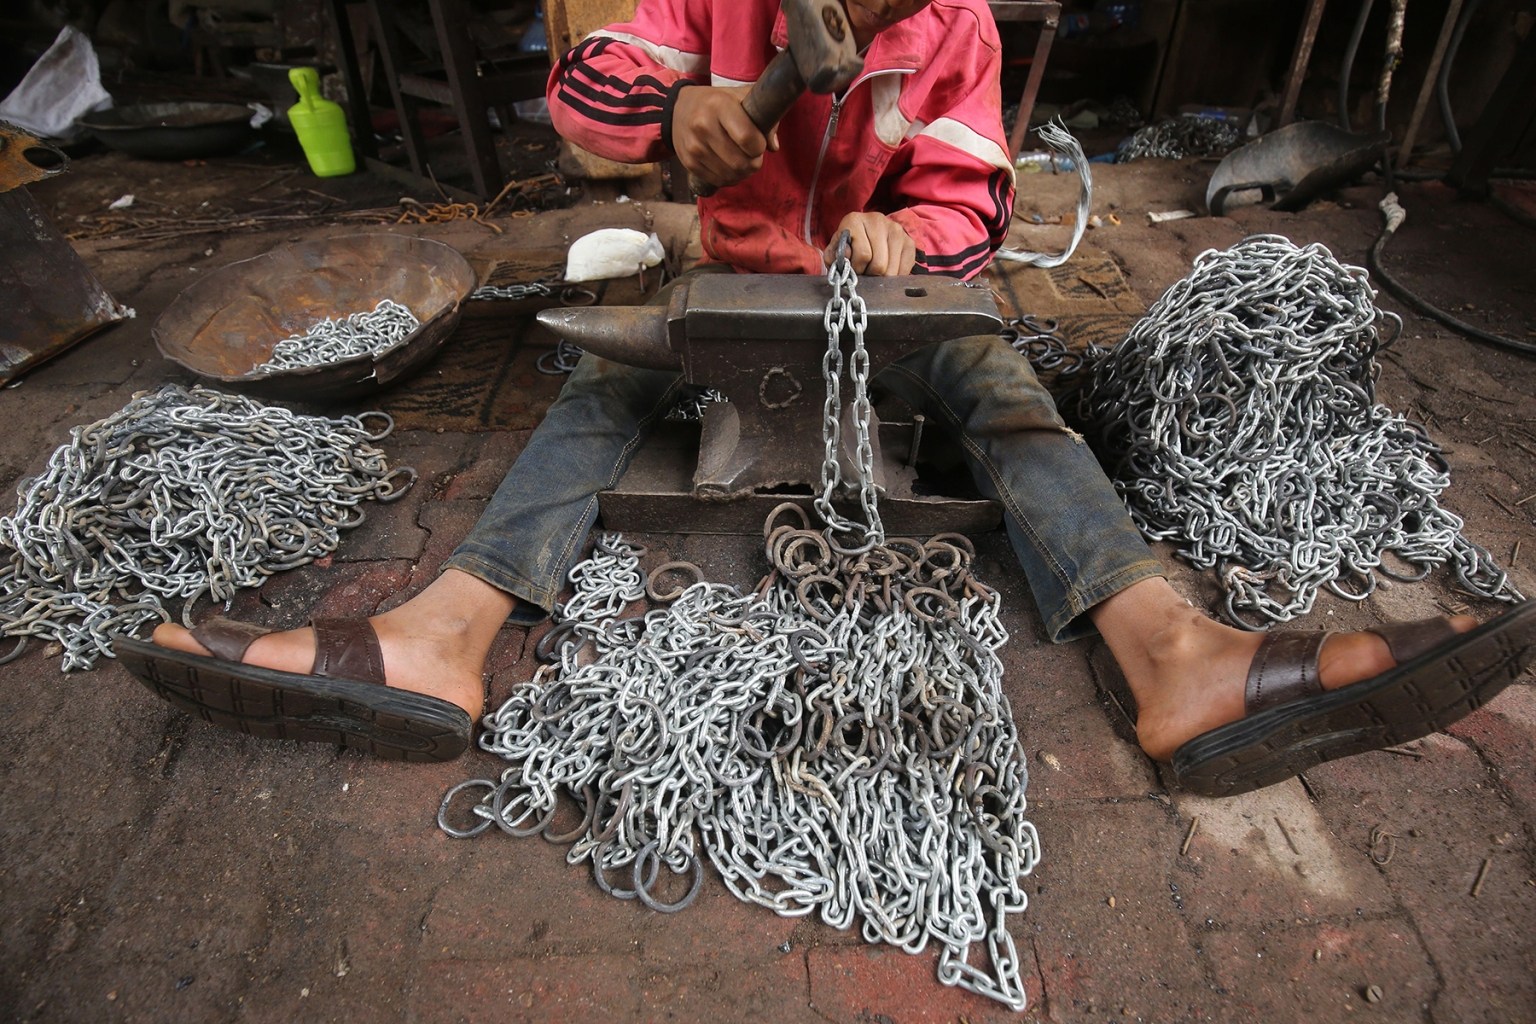 Ali Jawad, 12, who left school to support his family, works in an iron chains industry workshop on Haifa street in Baghdad, Iraq, on Nov.5. AHMAD AL-RUBAYE/AFP/Getty Images